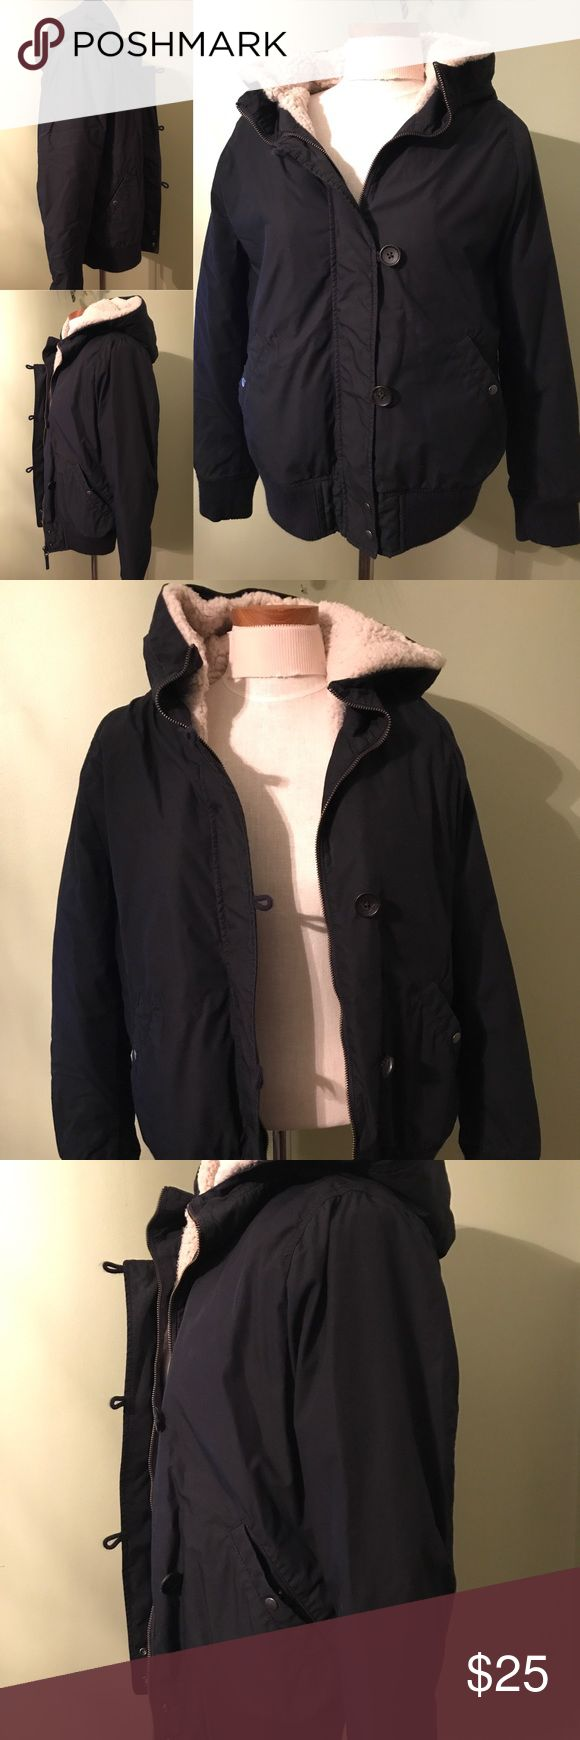 Uniqlo Coat/Jacket Large navy blue Uniqlo Coat/jacket with very warm removable lining making this jacket very versatile! Let me know if you would like to see more picture of the interior and removable lining! Barely worn! 🌟offers welcome🌟 Uniqlo Jackets & Coats